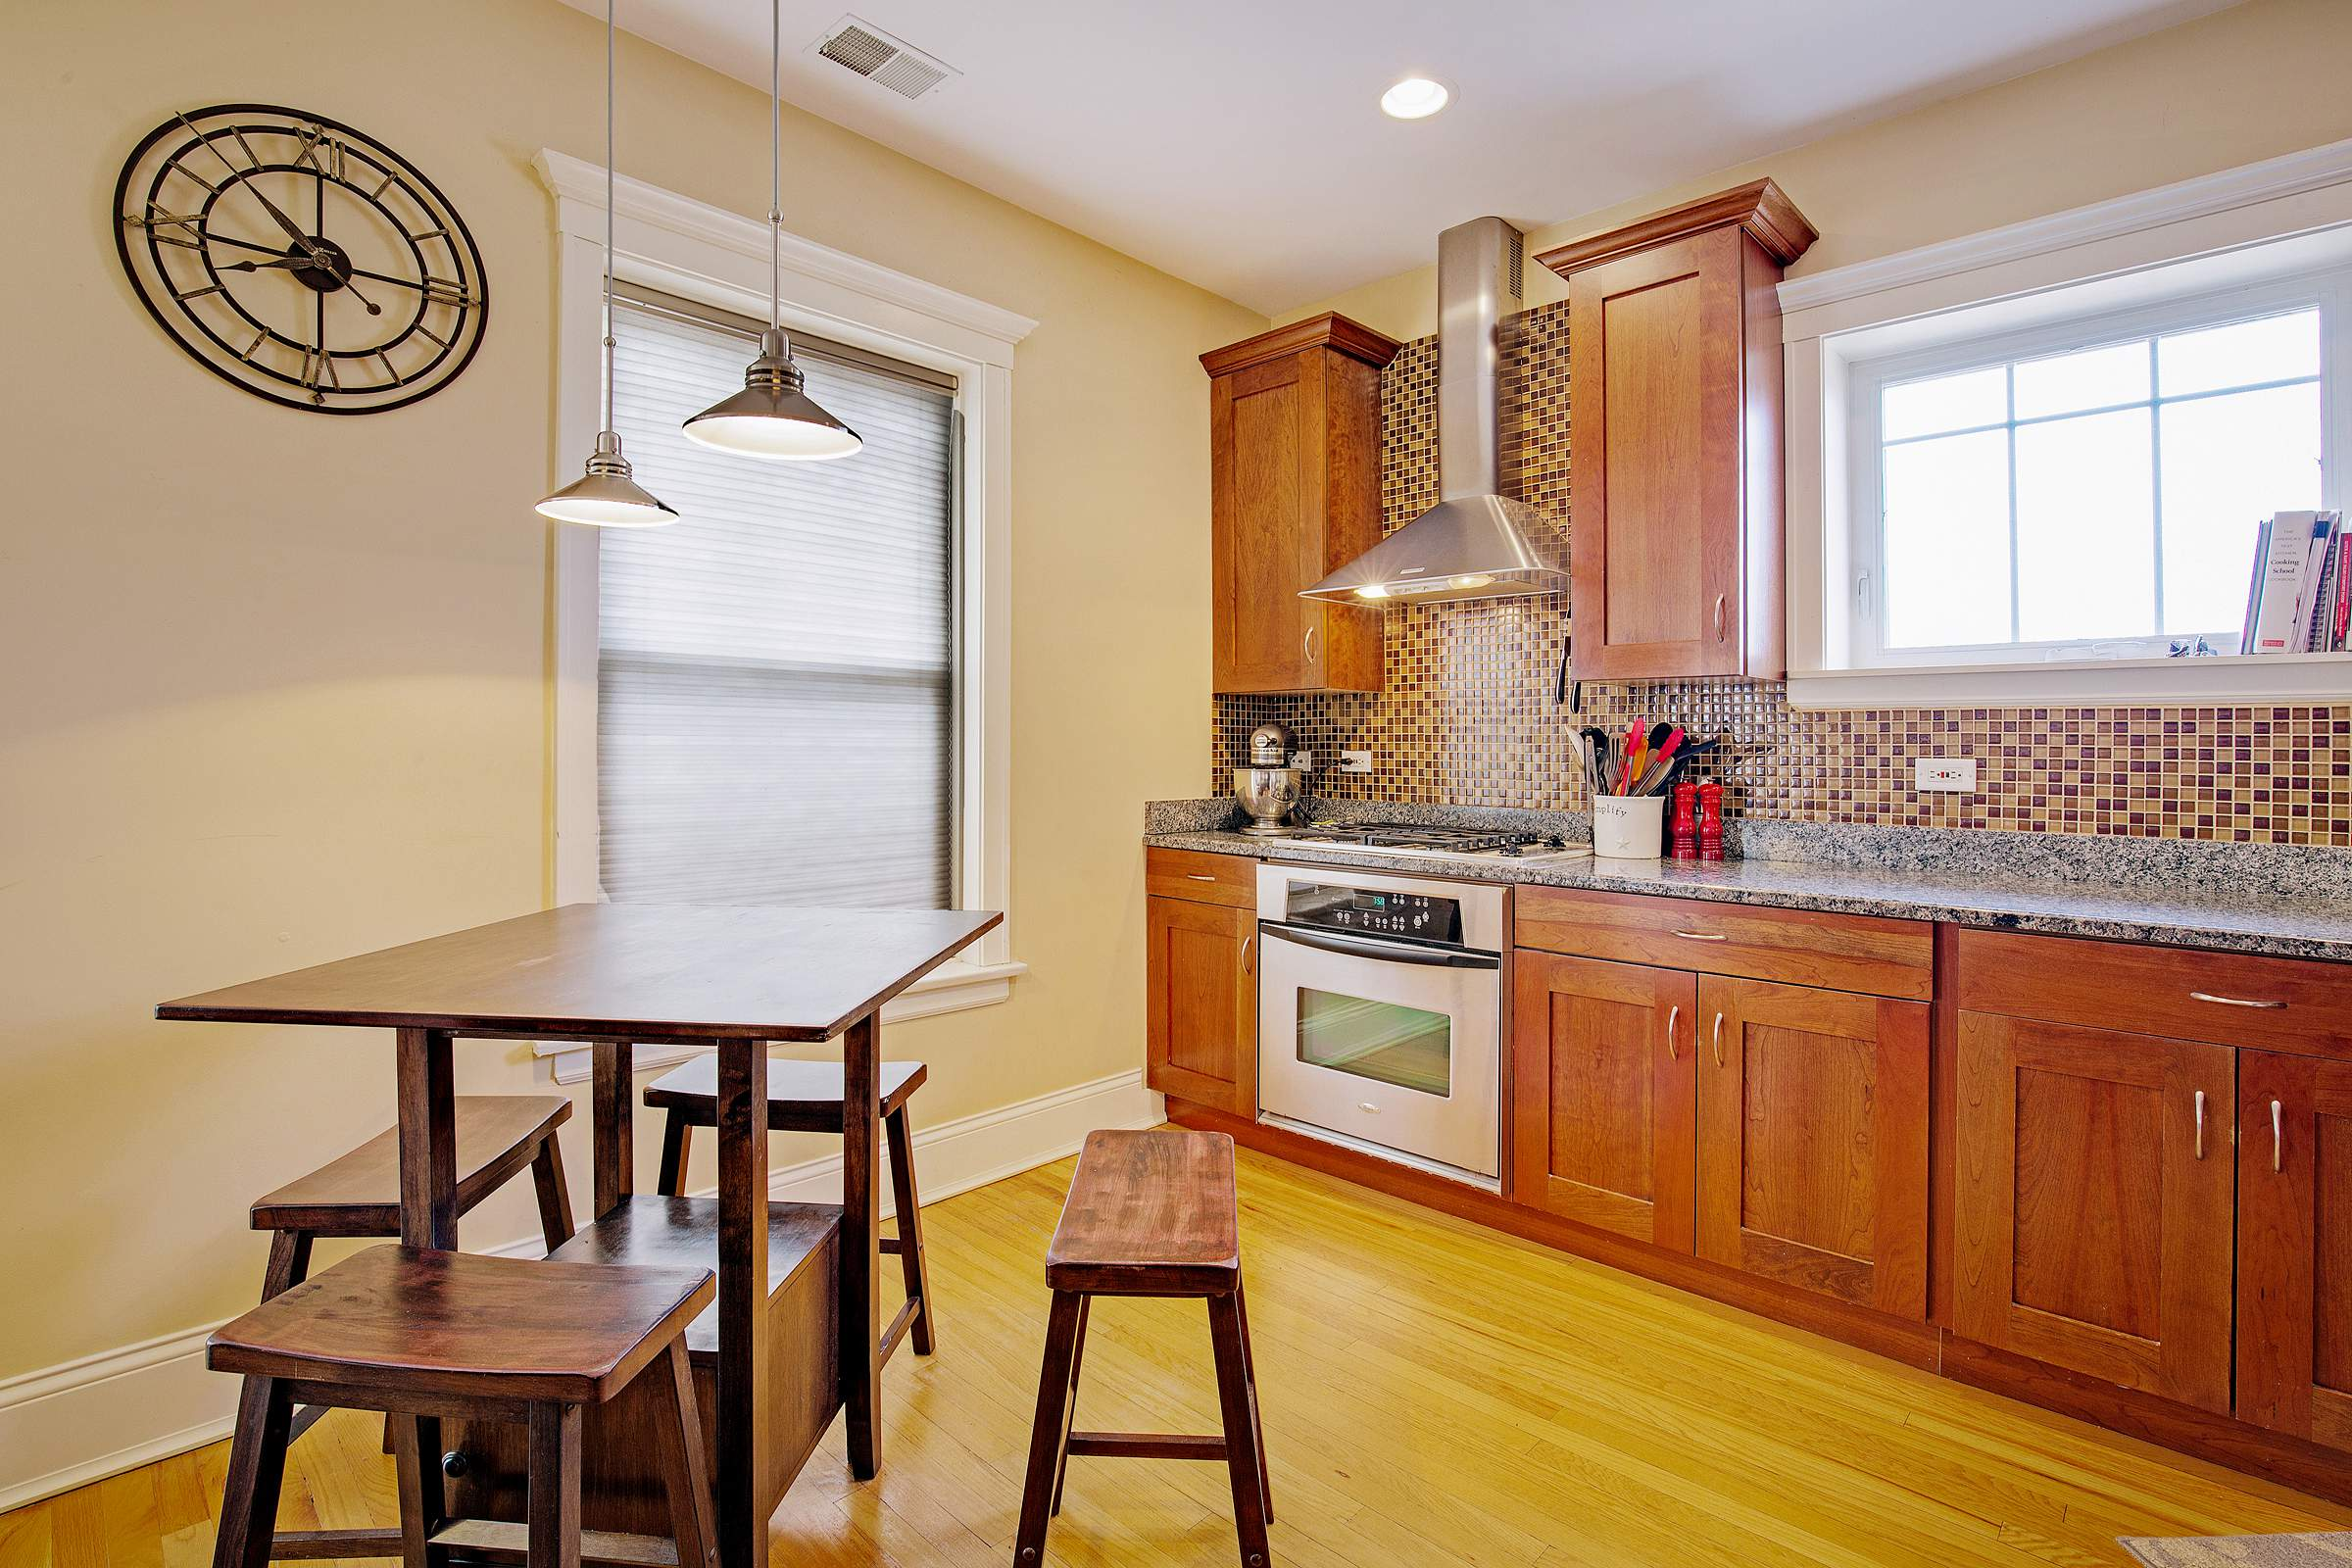 Chicago Home Photography for Realtors - 5319 Paulina St For